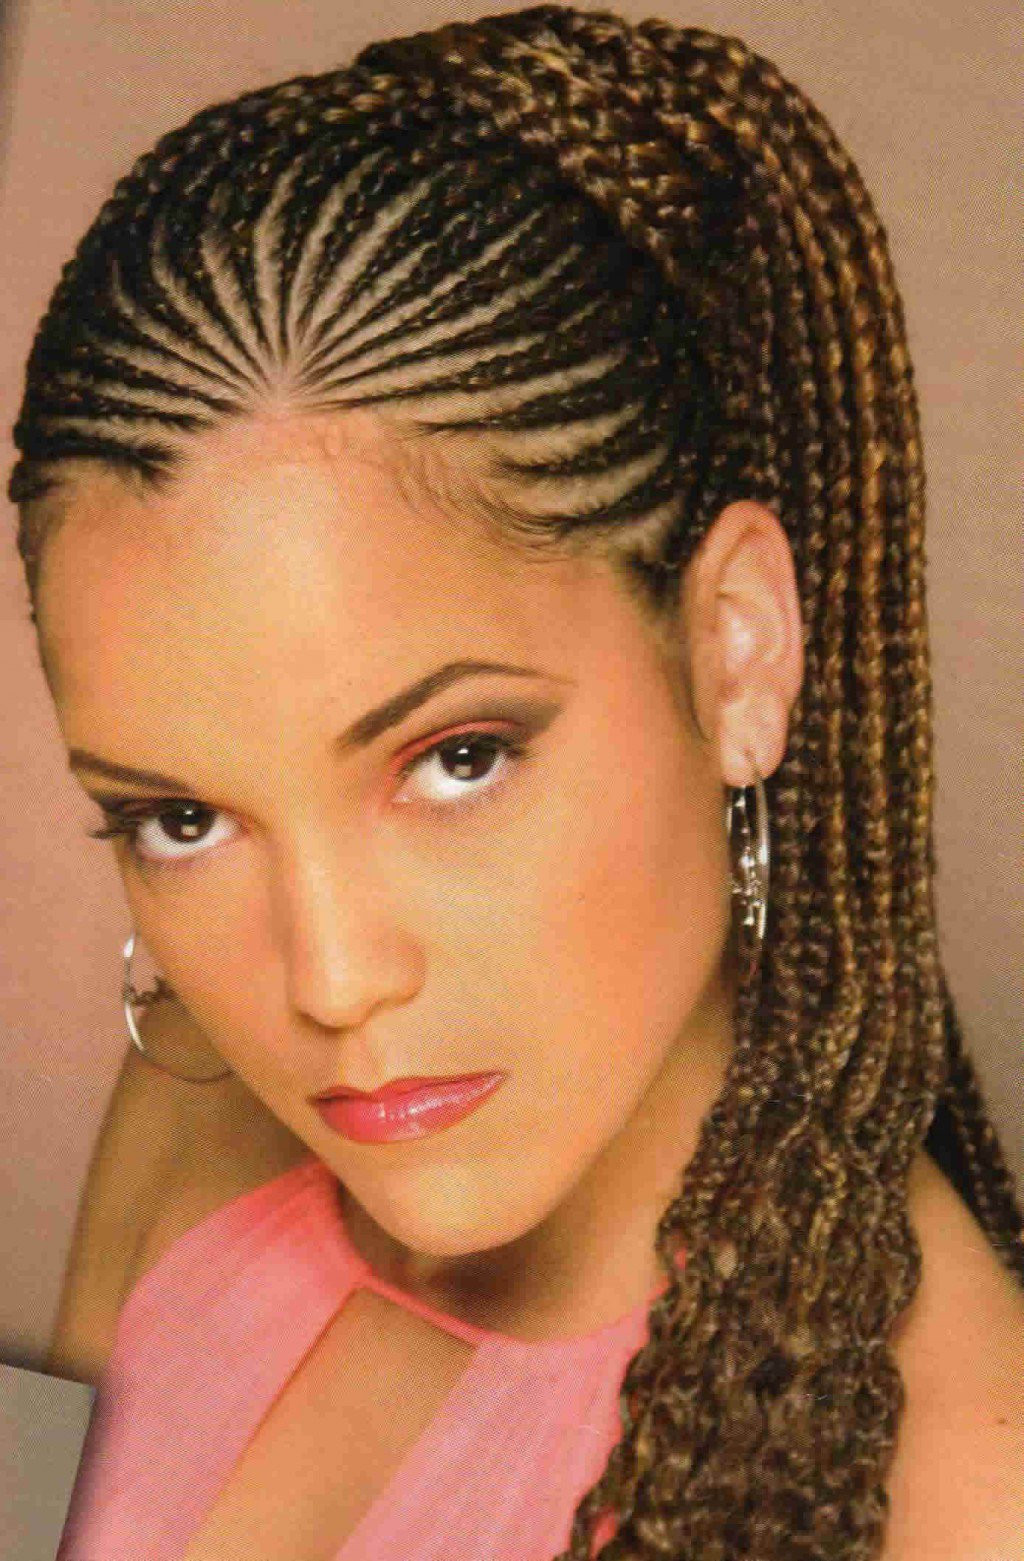 Best ideas about Braids Hairstyle For Black Ladies . Save or Pin Hair Braiding Styles Guide for Black Women Now.